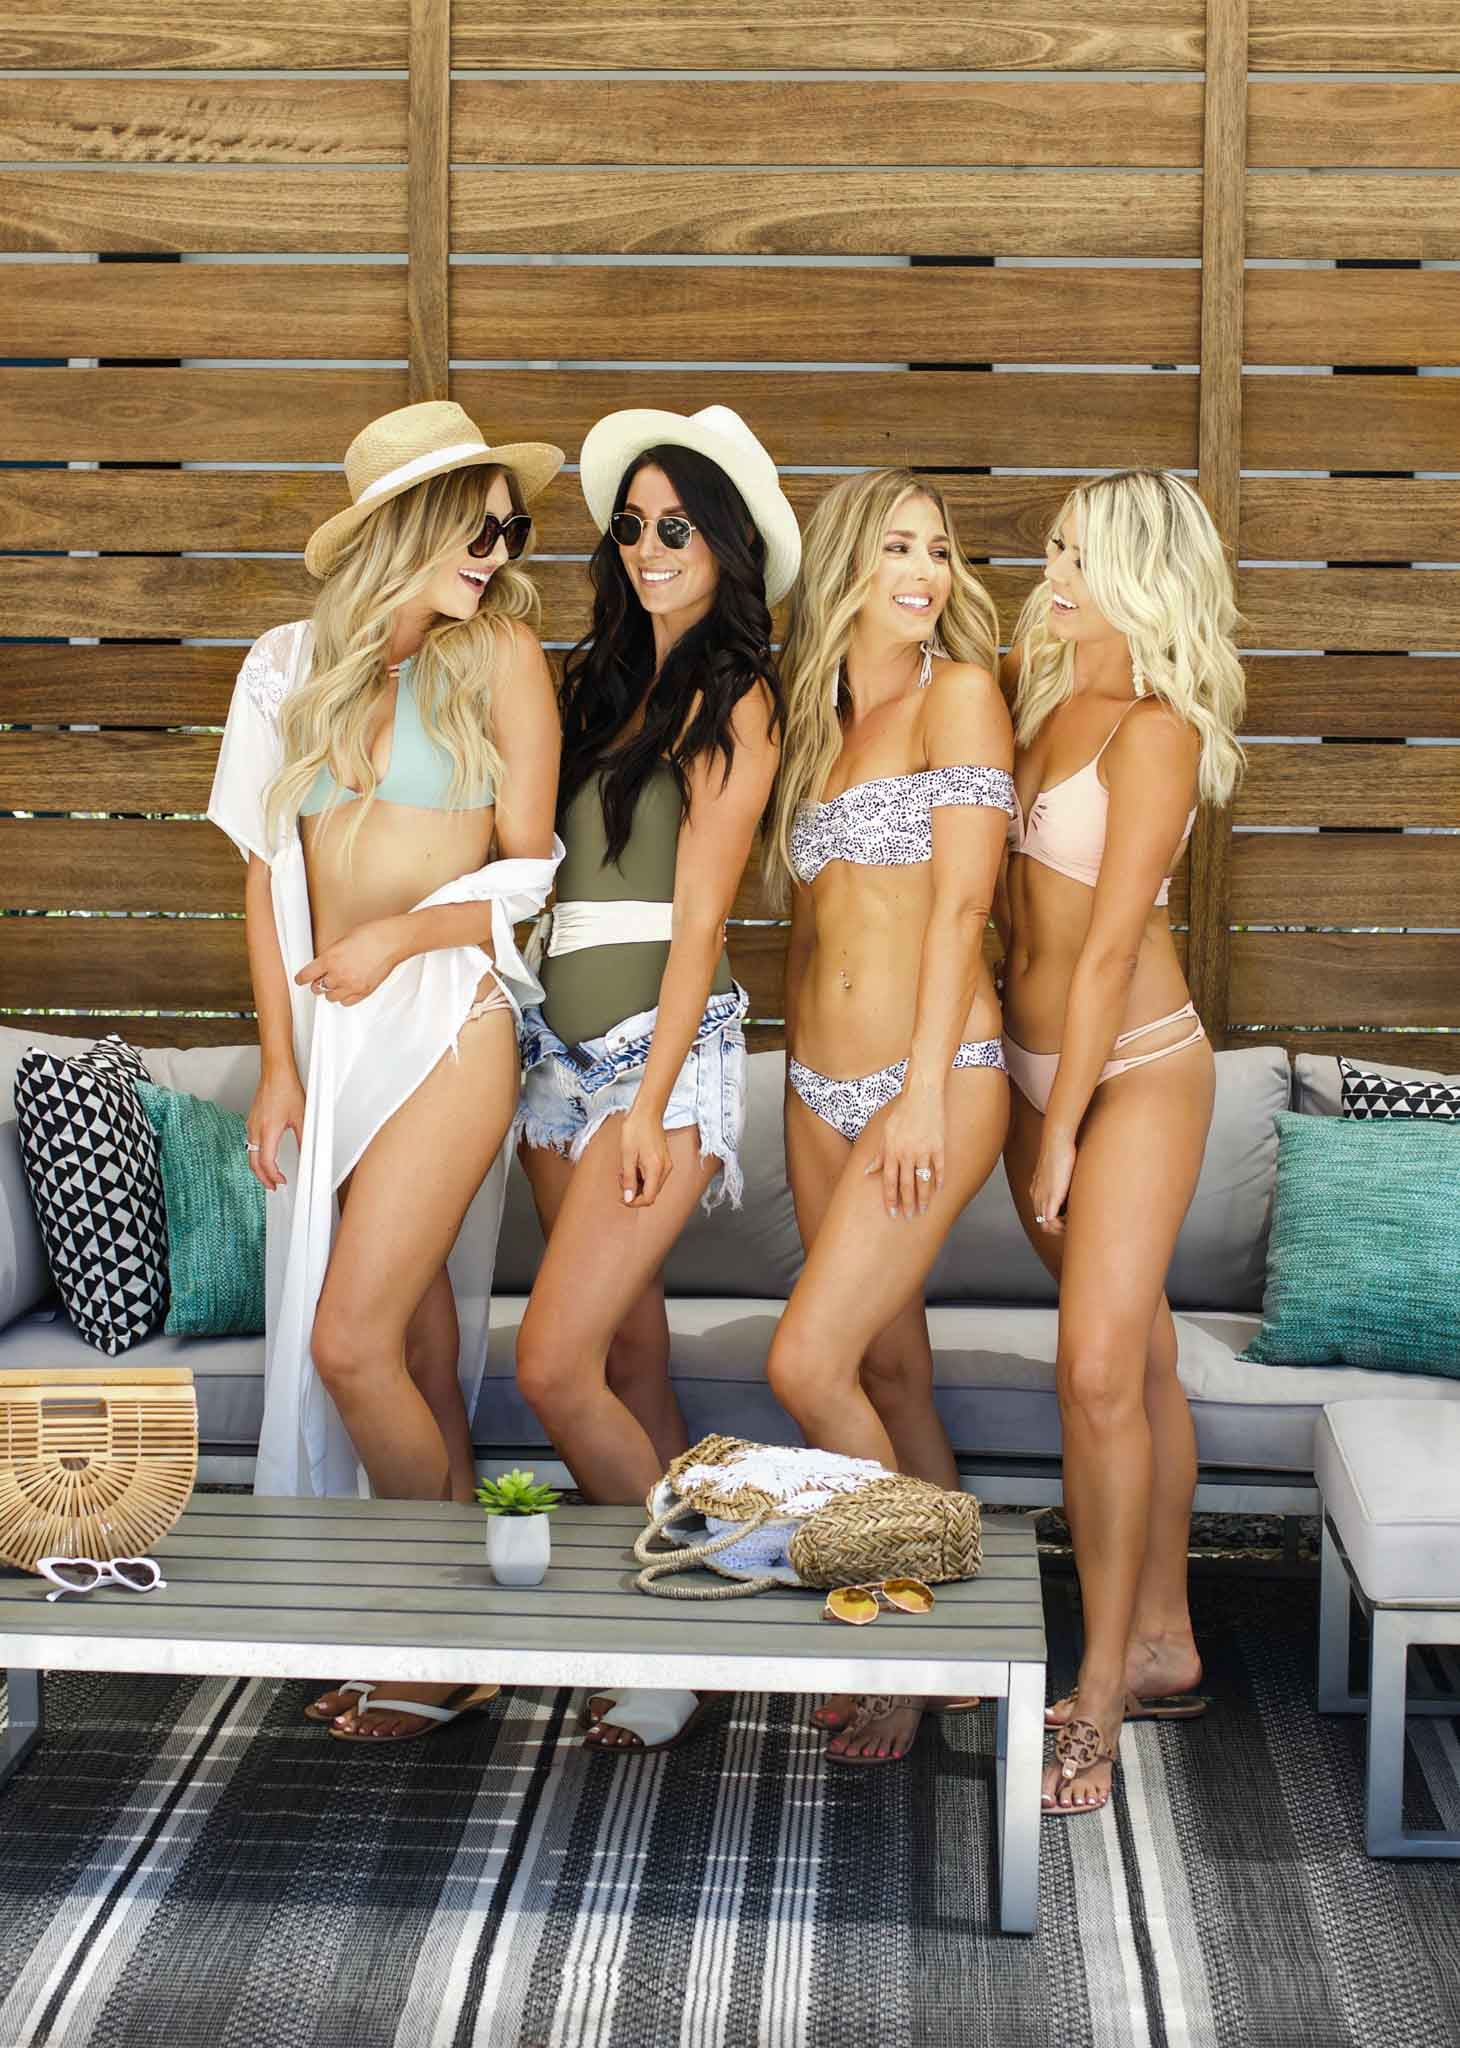 Erin Elizabeth of Wink and a Twirl and local Arizona bloggers share their KOA Swimwear at the Hotel Adeline in Scottsdale, Arizona